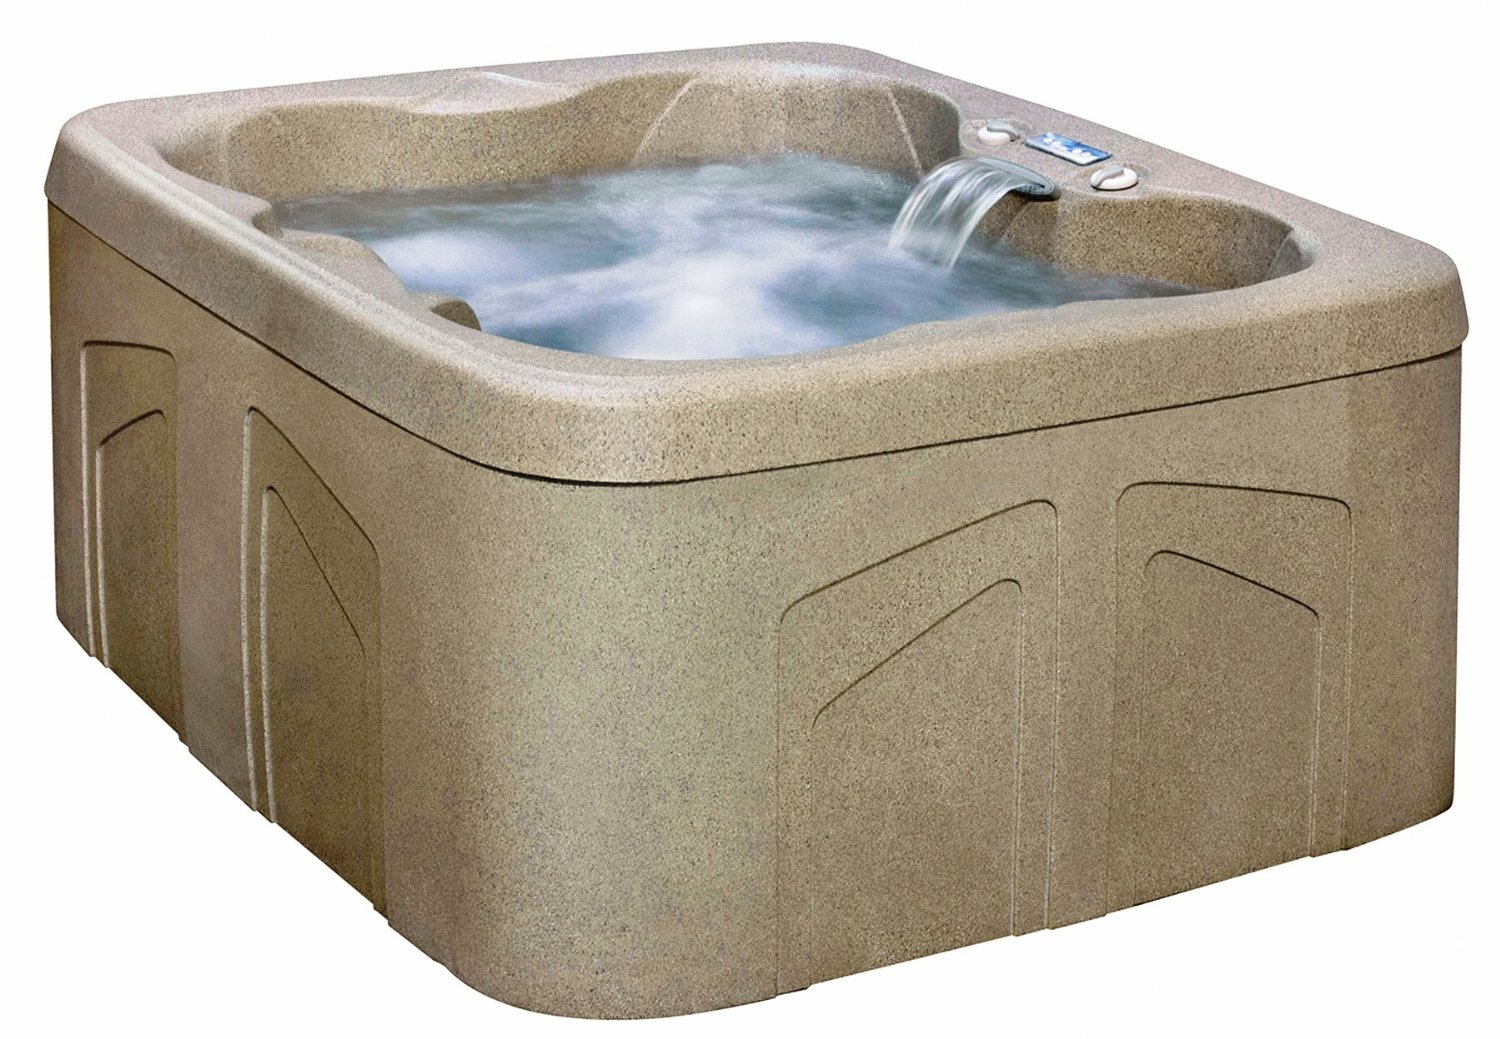 Jacuzzi Pool Top Caps Top 10 Amazing Hot Tubs 2017 Top Value Reviews